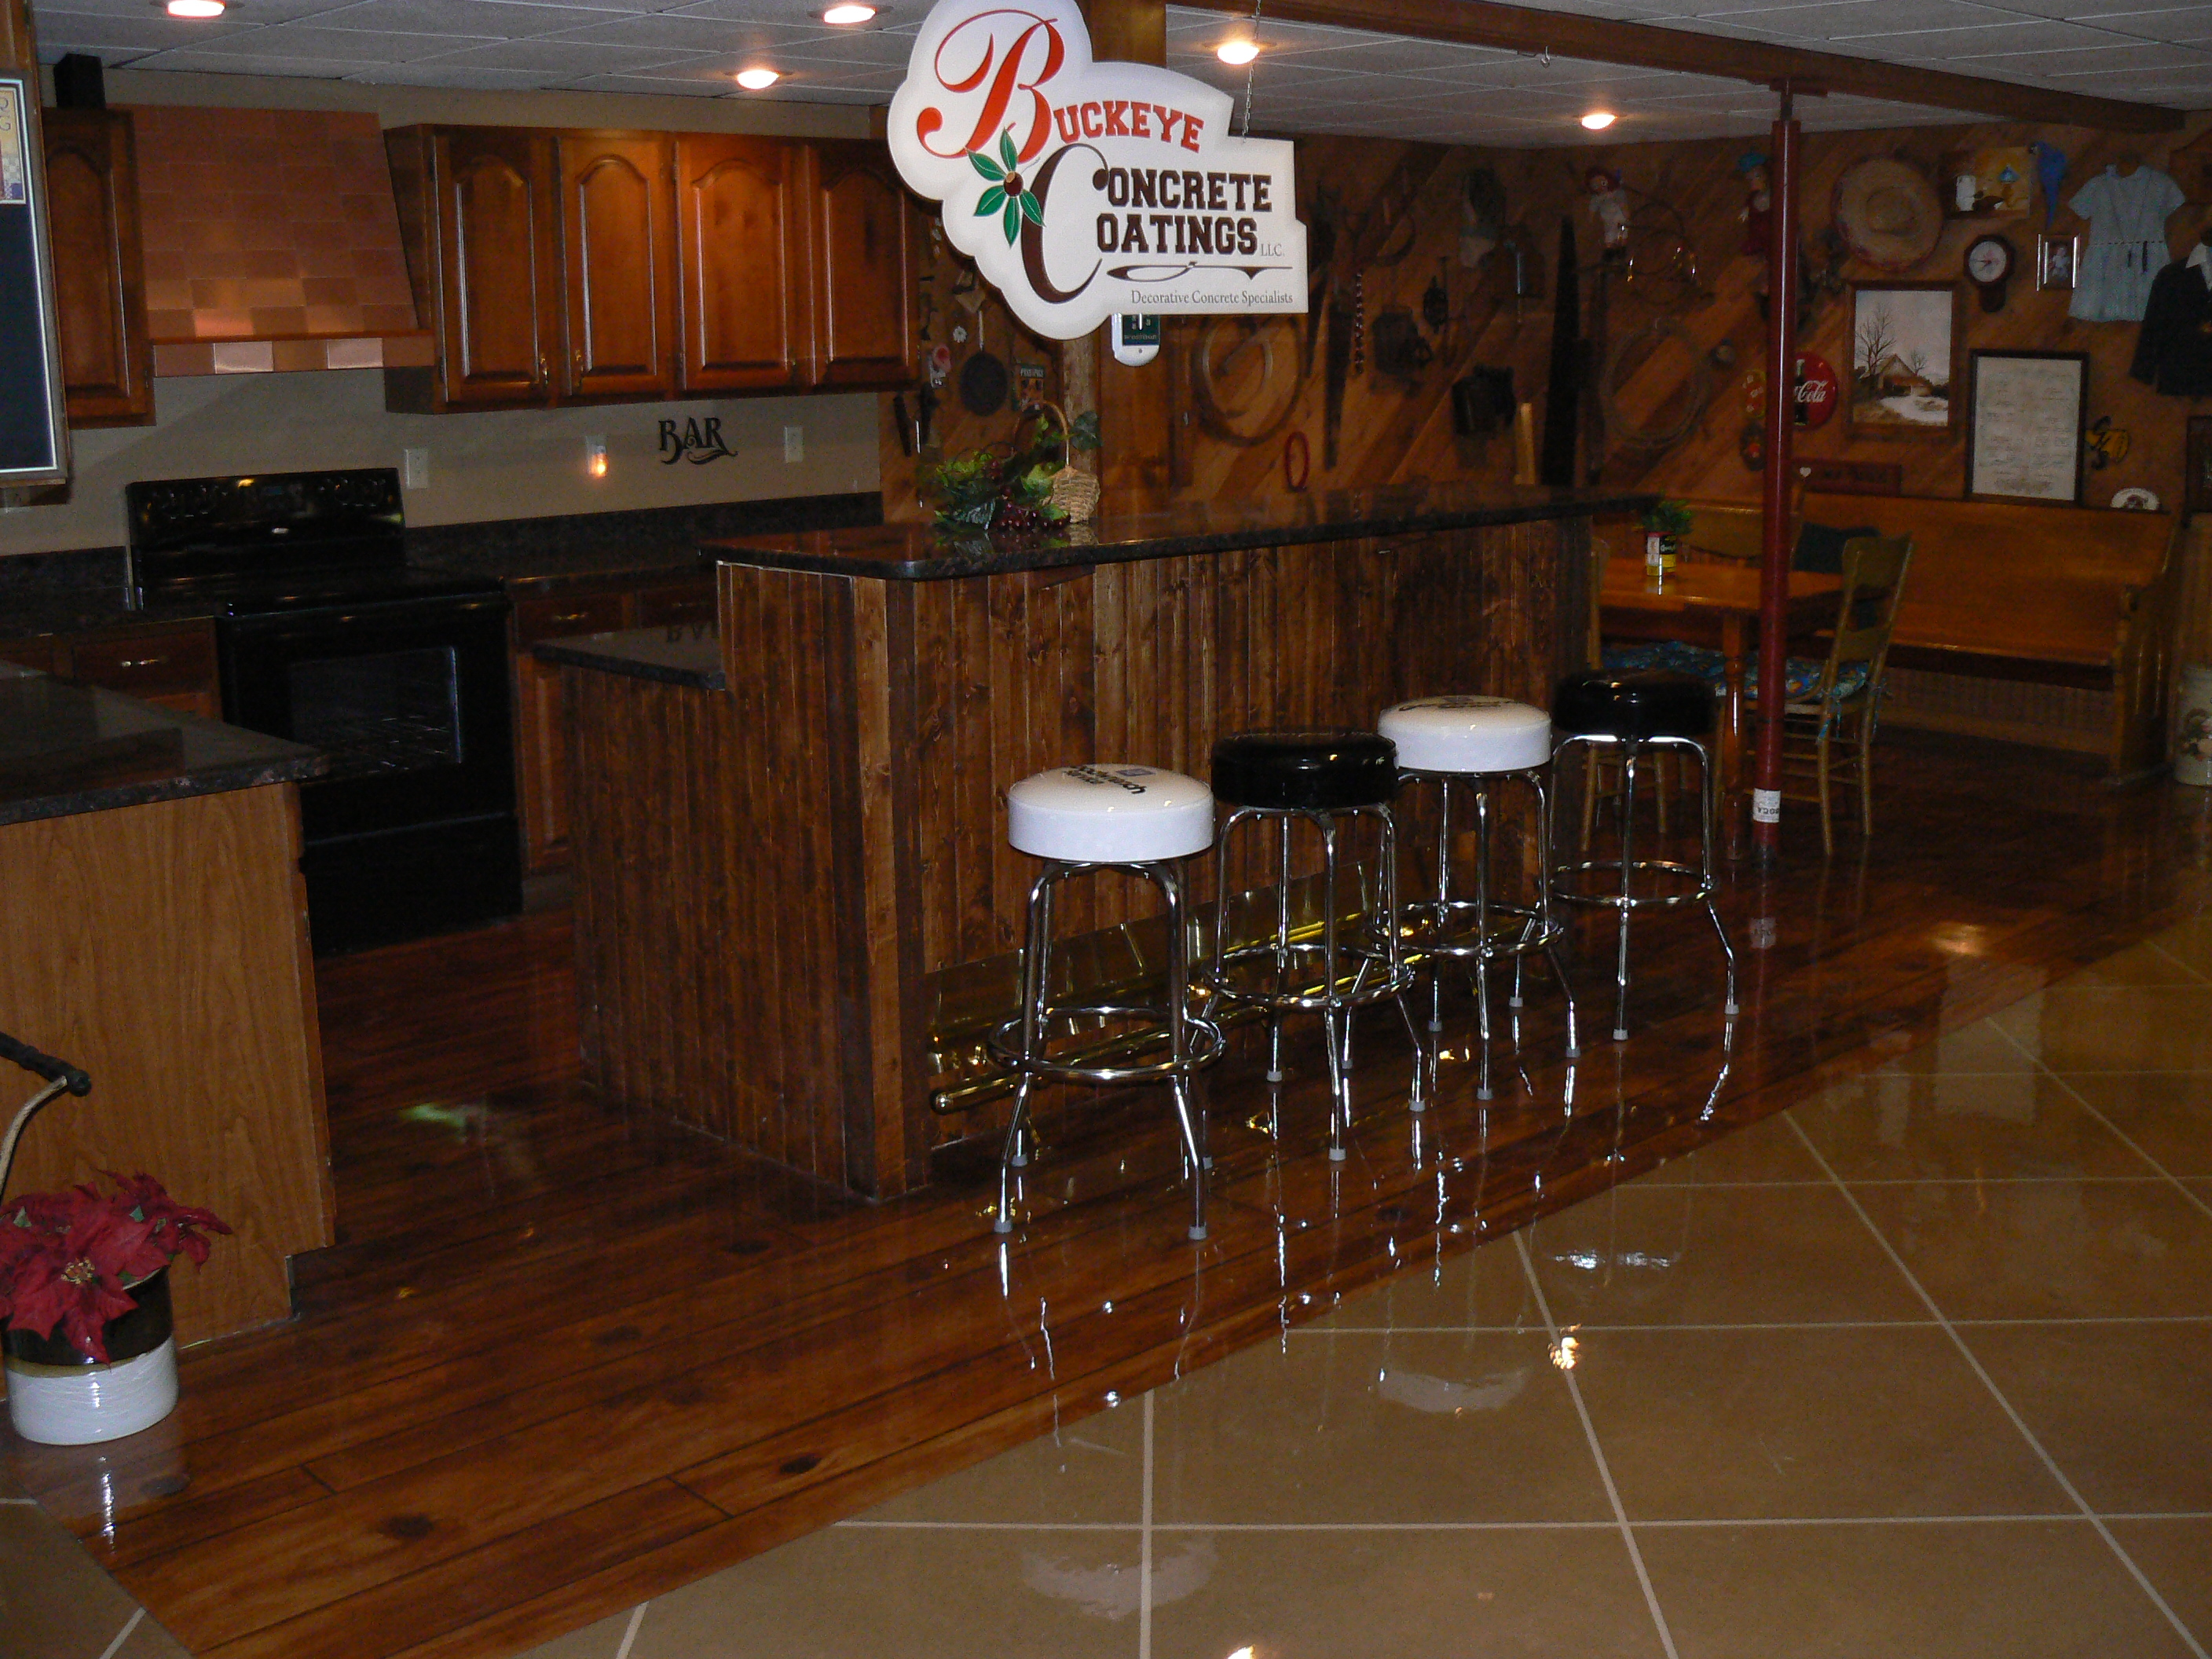 ... Basement Wood Floor And Stained Tile Floor Near